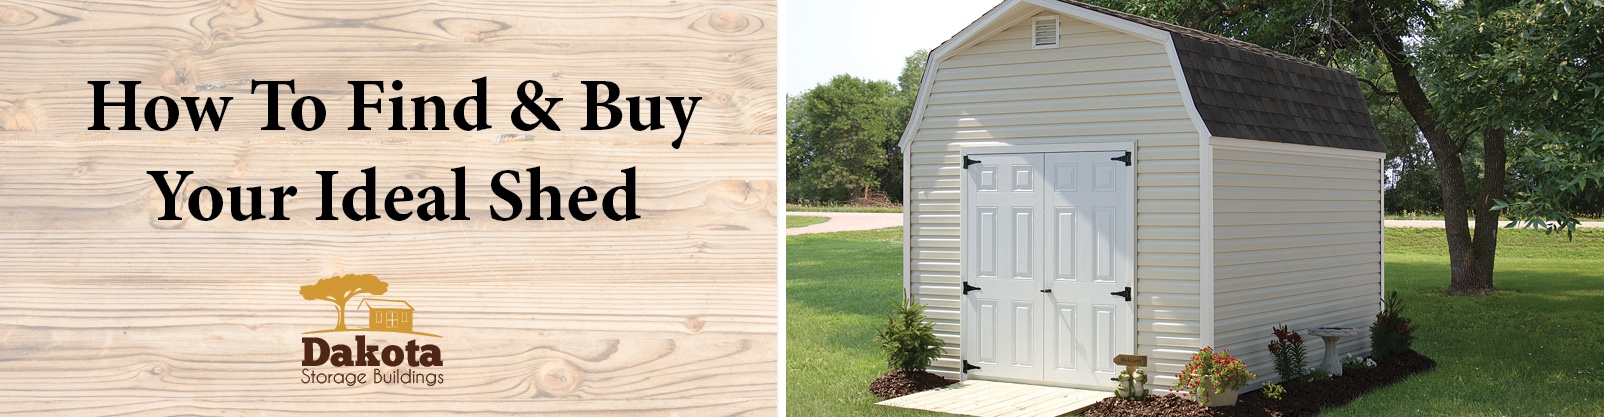 How To Find & Buy Your Ideal Shed